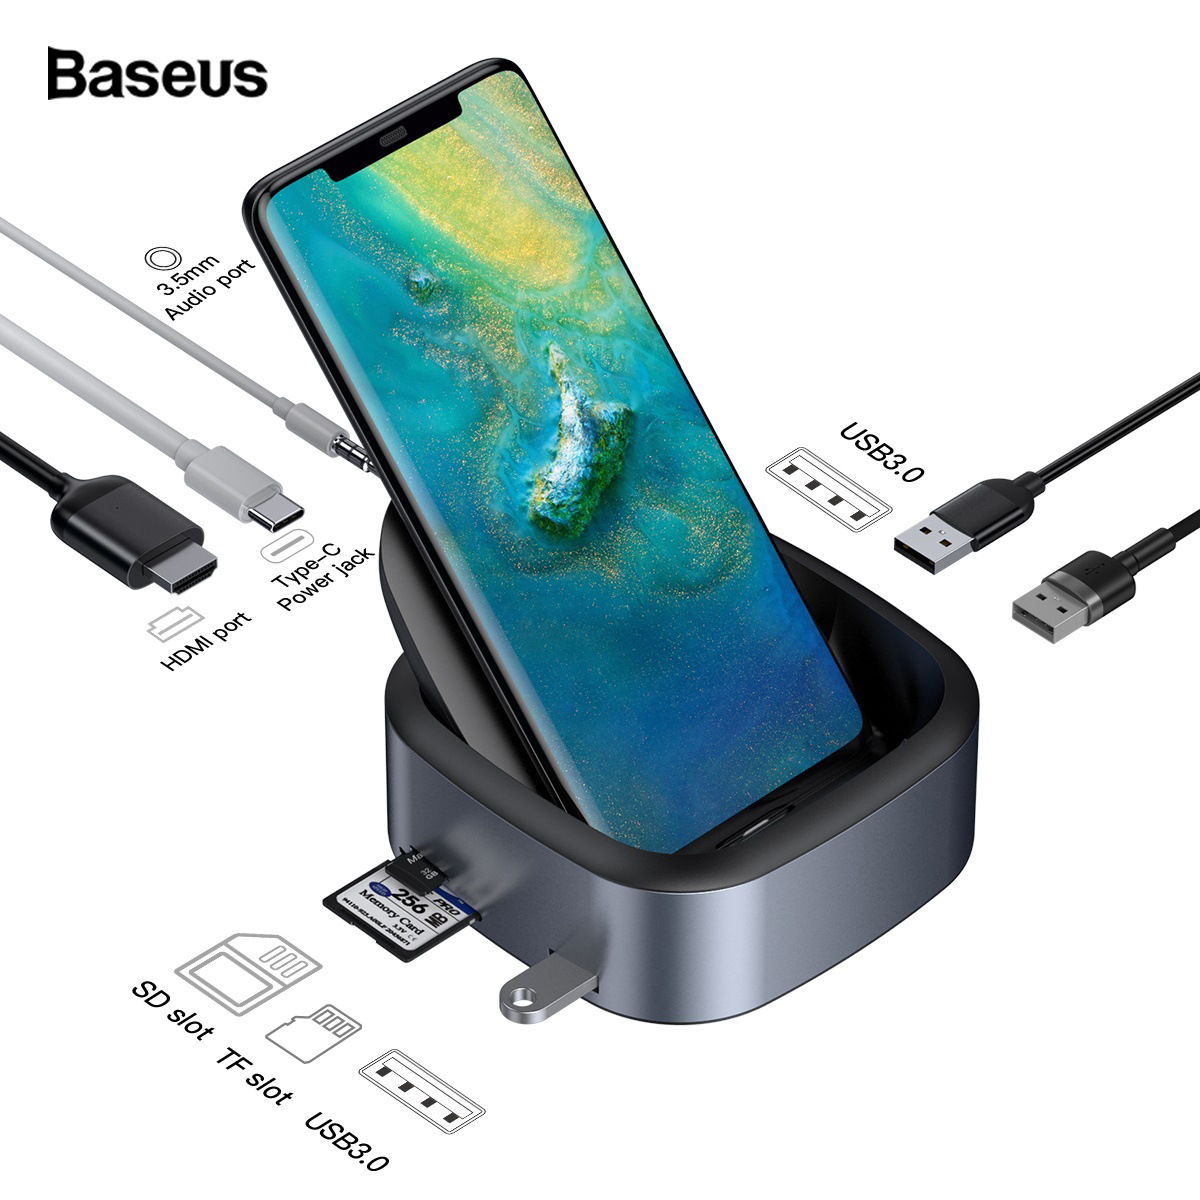 Baseus USB C HUB Docking Station For Huawei P30 P20 Pro Samsung S10 S9 Dex Pad Type C to USB3.0 HDMI Jack 3.5mm PD Charger Dock